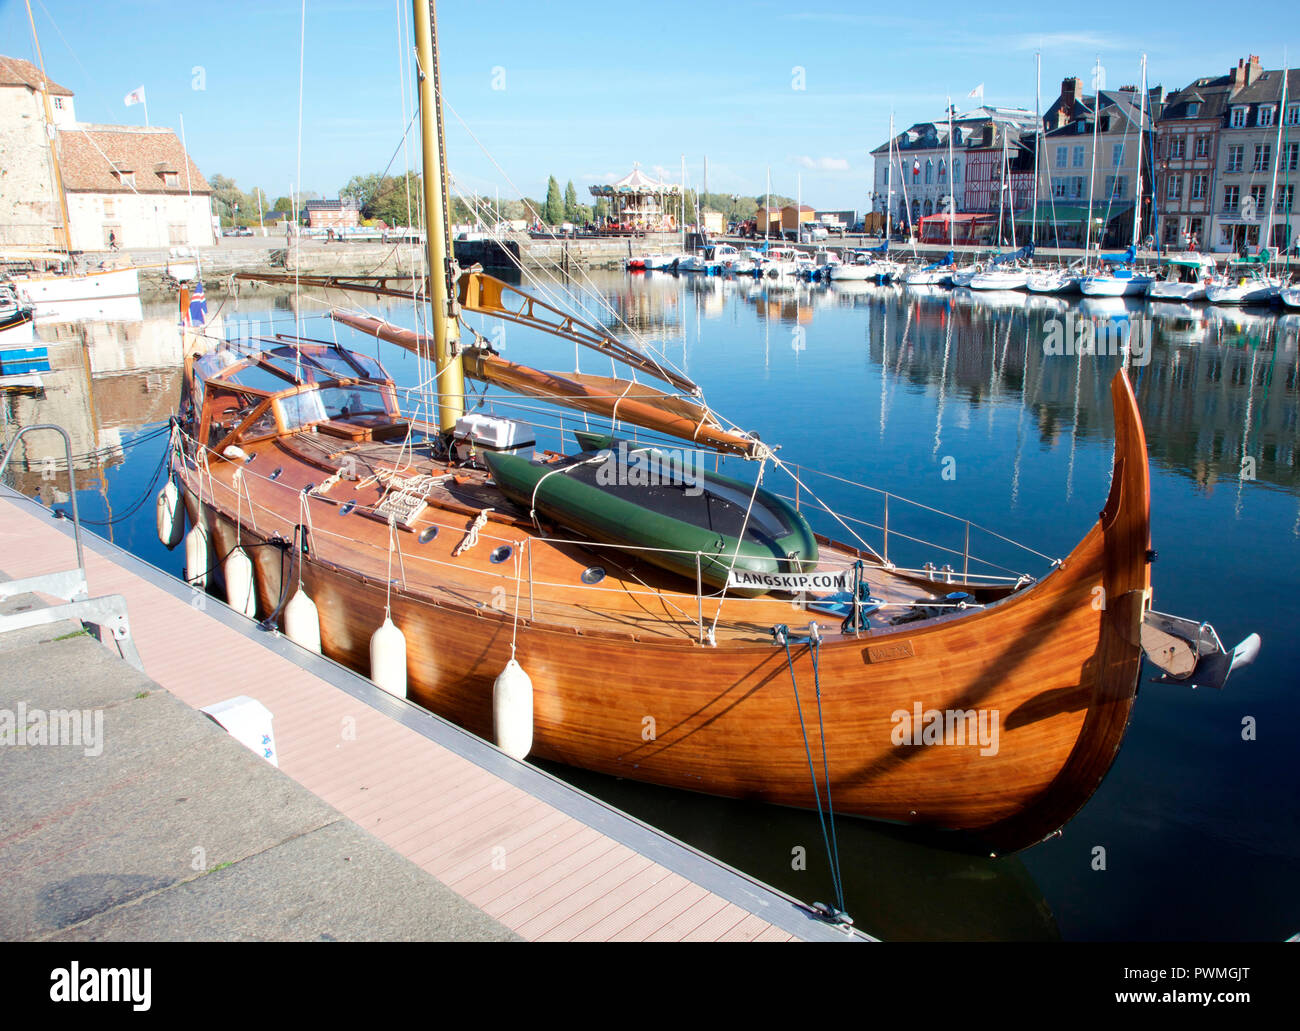 Valtyr, a Viking longboat moored in Honfleur Harbour, Normandy - Stock Image